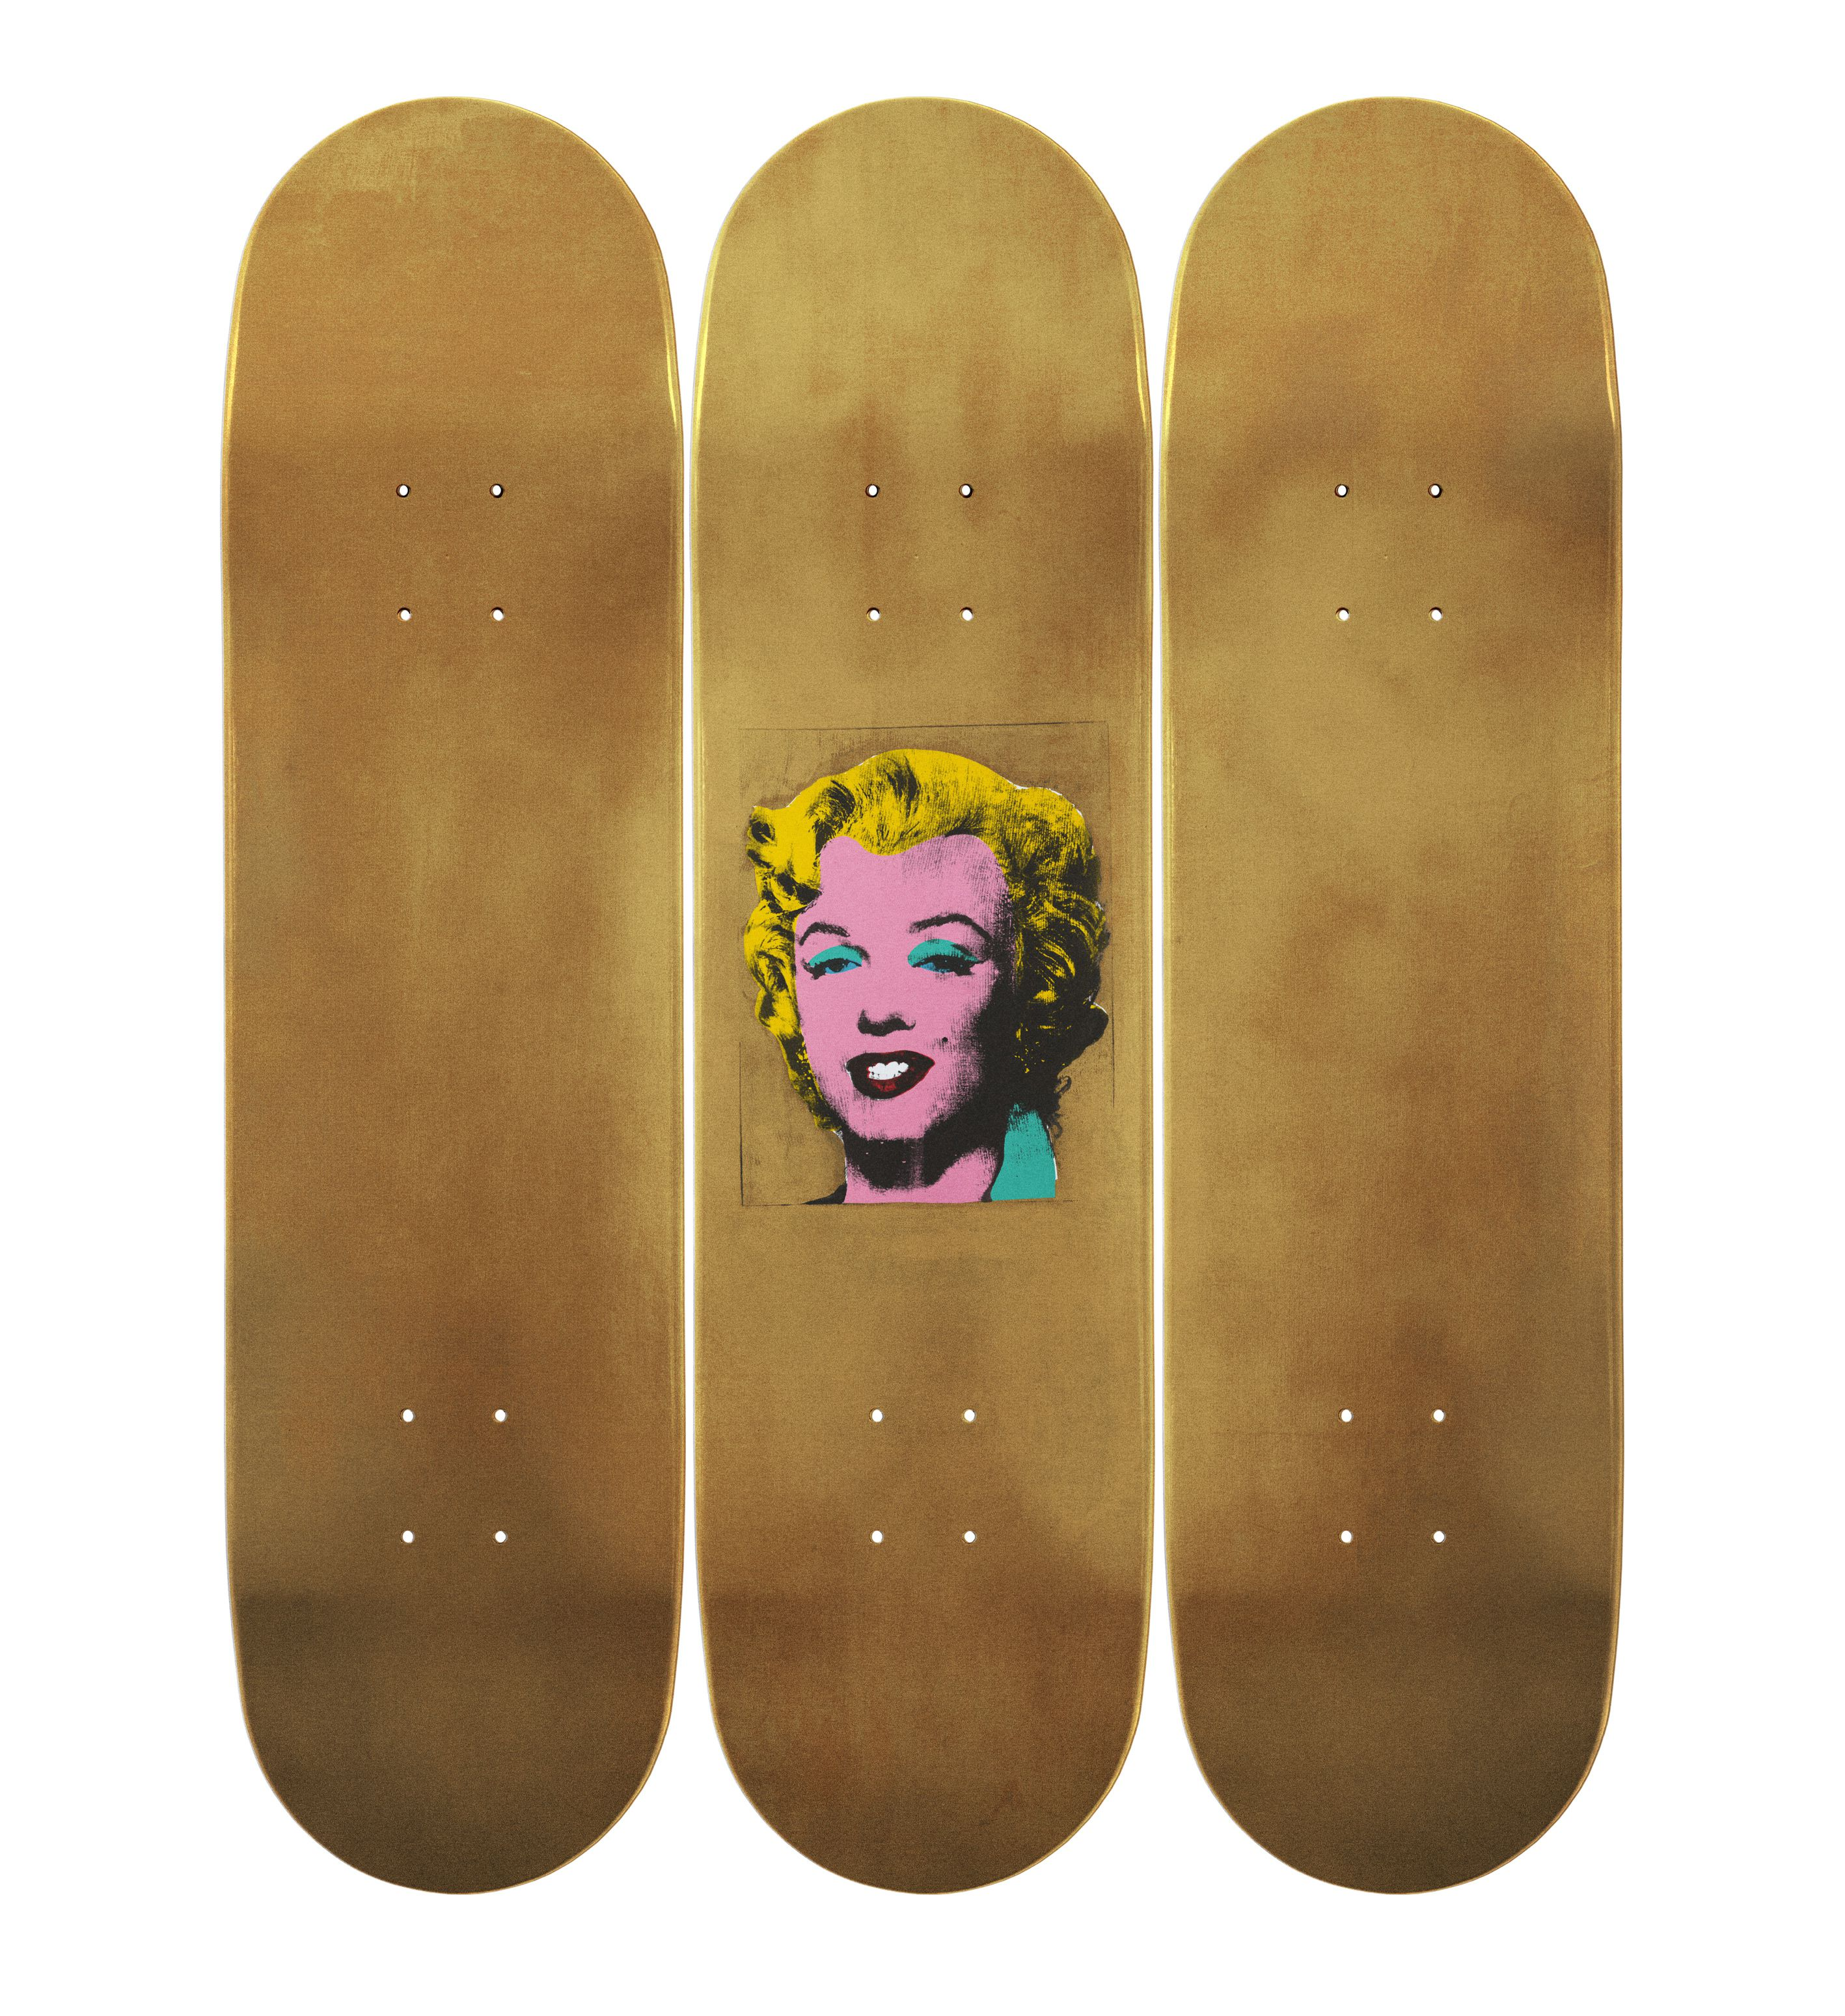 ANDY WARHOL SKATEBOARD DECKS - The Rebel Dandy